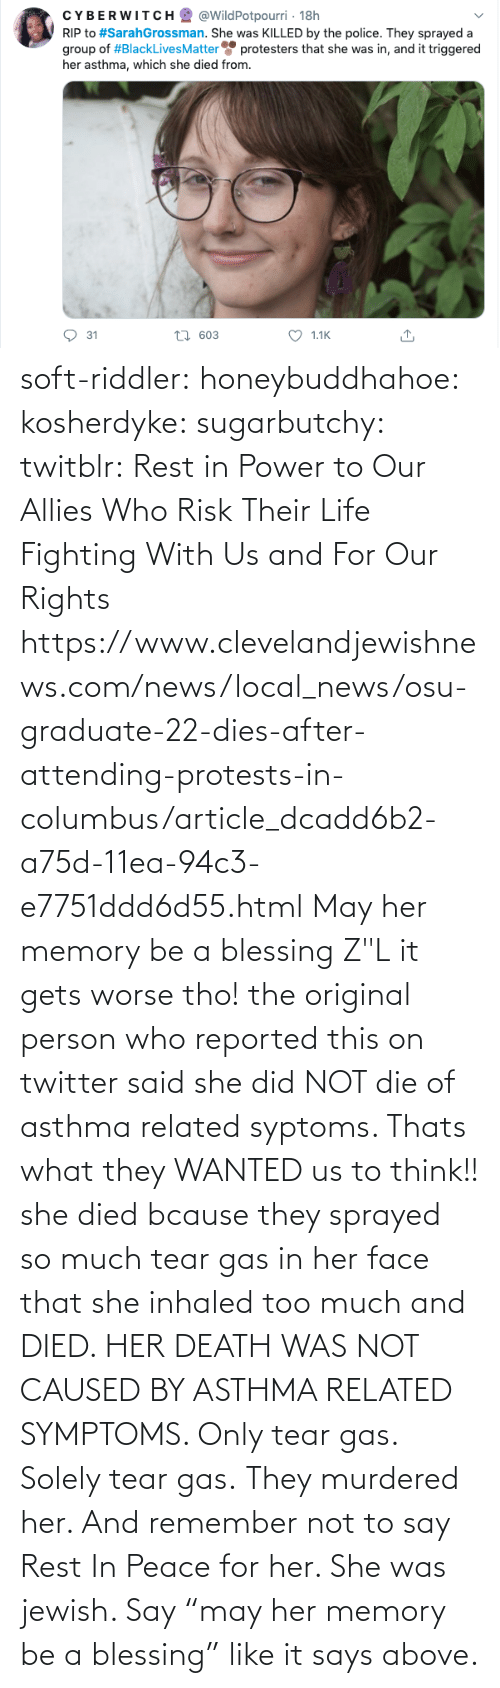 "Twitter: soft-riddler:  honeybuddhahoe:  kosherdyke:  sugarbutchy:  twitblr: Rest in Power to Our Allies Who Risk Their Life Fighting With Us and For Our Rights https://www.clevelandjewishnews.com/news/local_news/osu-graduate-22-dies-after-attending-protests-in-columbus/article_dcadd6b2-a75d-11ea-94c3-e7751ddd6d55.html    May her memory be a blessing Z""L  it gets worse tho! the original person who reported this on twitter said she did NOT die of asthma related syptoms. Thats what they WANTED us to think!! she died bcause they sprayed so much tear gas in her face that she inhaled too much and DIED. HER DEATH WAS NOT CAUSED BY ASTHMA RELATED SYMPTOMS. Only tear gas. Solely tear gas. They murdered her.     And remember not to say Rest In Peace for her. She was jewish. Say ""may her memory be a blessing"" like it says above."